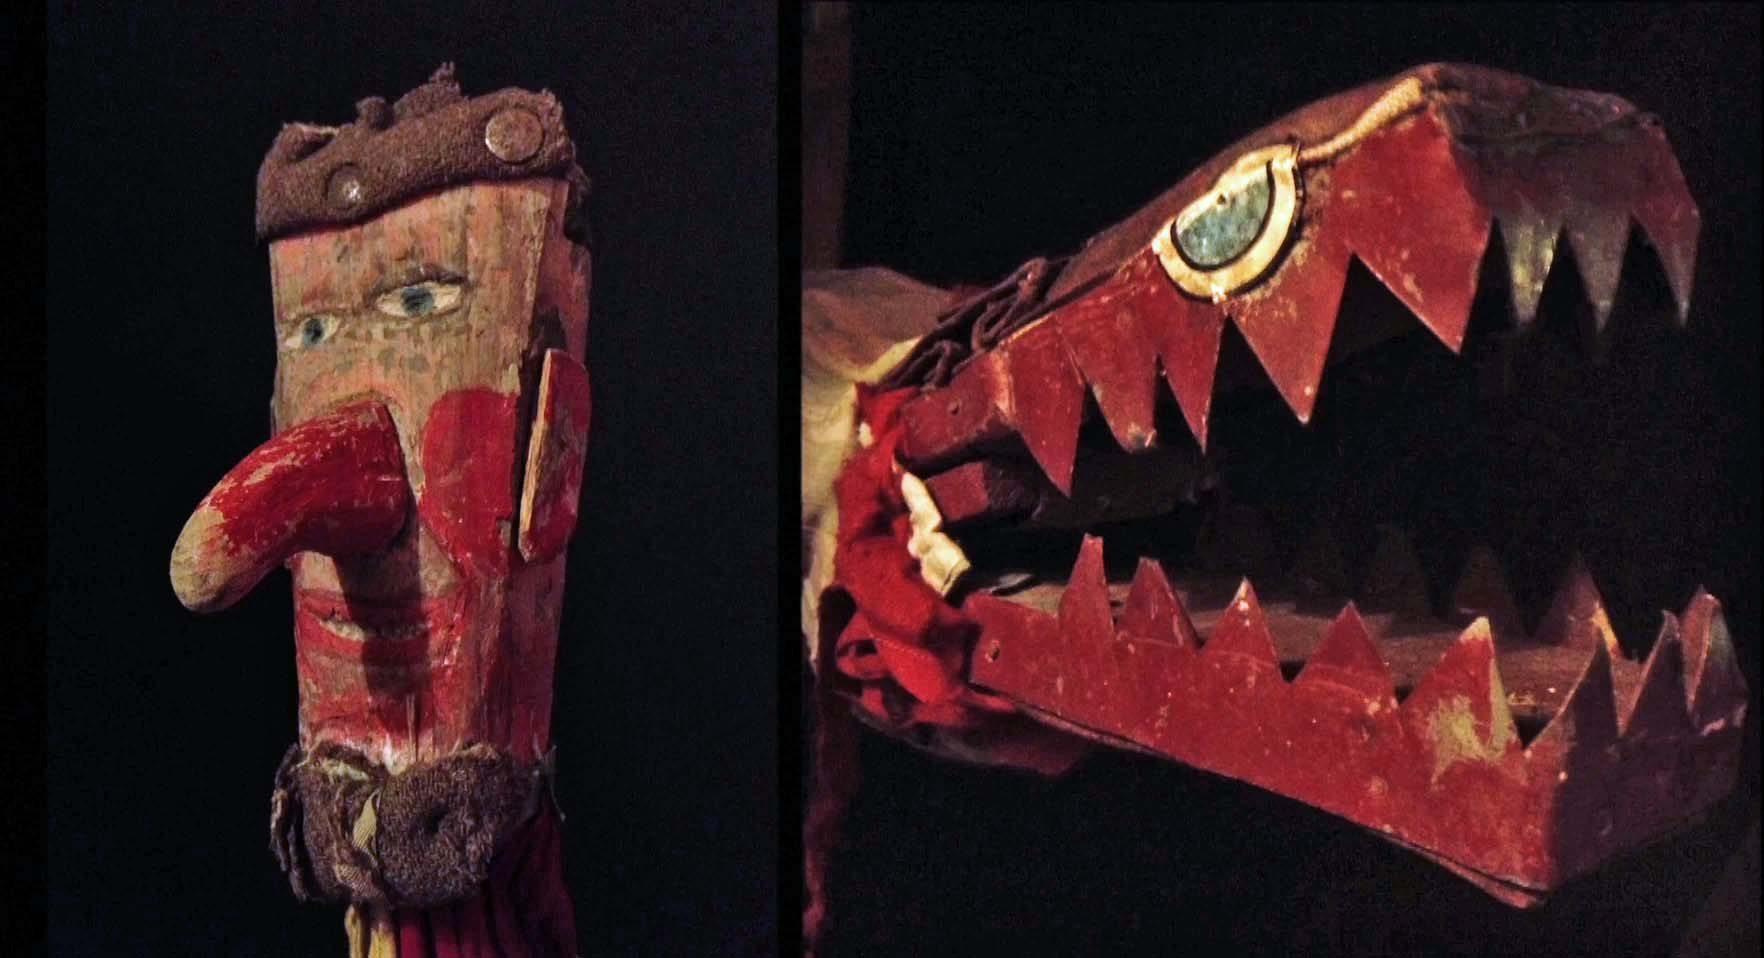 a photo of a wooden head and crocodile style puppet